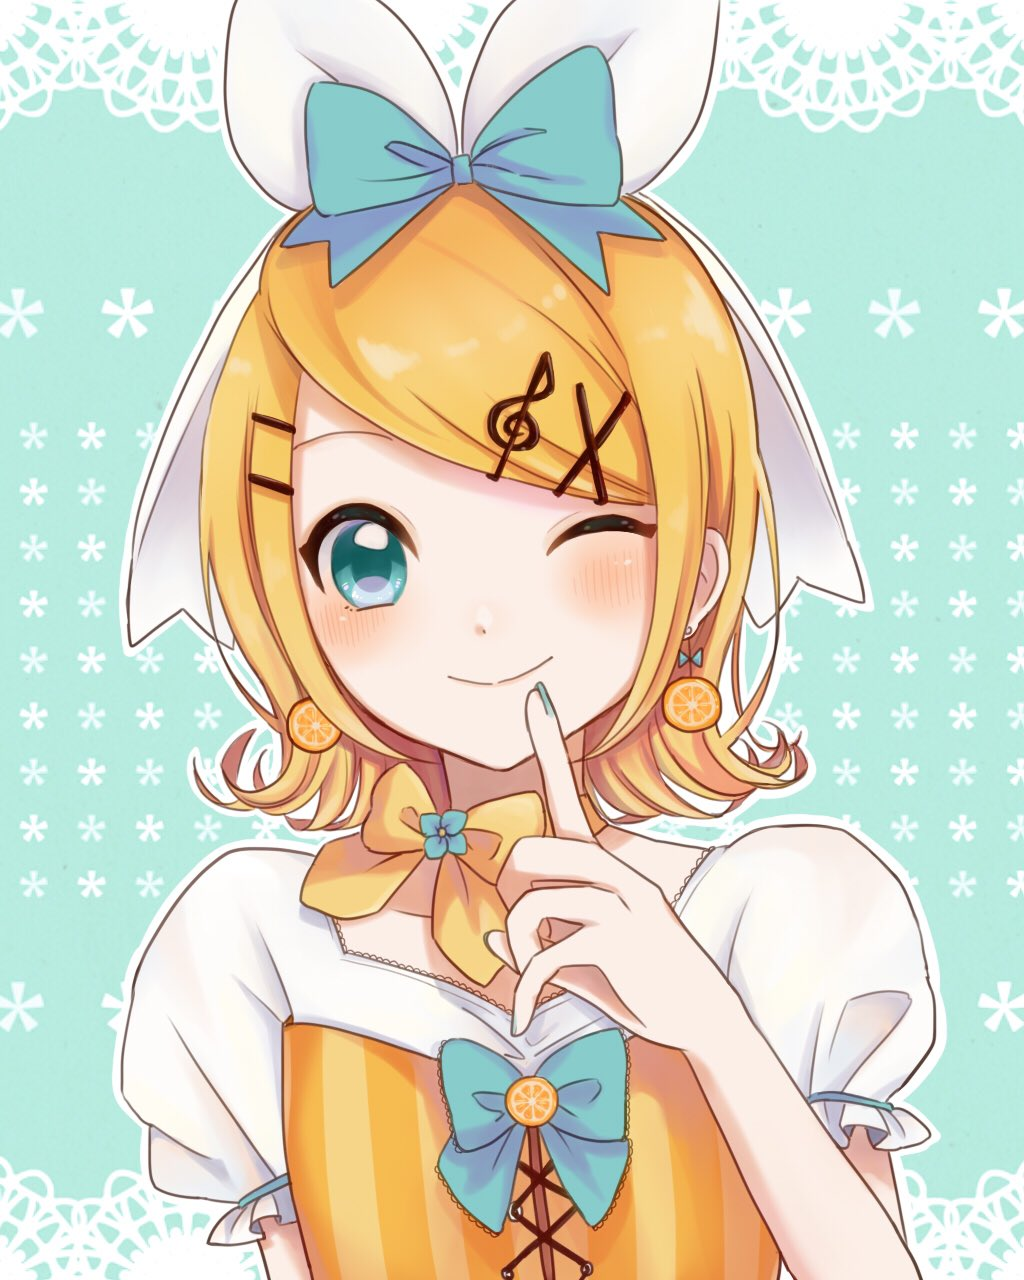 1girl ai10_k00 aqua_background aqua_bow aqua_eyes aqua_nails aqua_neckwear bangs blonde_hair blush bow bowtie commentary earrings finger_to_mouth food food_themed_earrings fruit hair_bow hair_ornament hairclip hand_up highres index_finger_raised jewelry kagamine_rin lace_background looking_at_viewer nail_polish one_eye_closed orange orange_earrings orange_neckwear orange_shirt puffy_sleeves shirt short_hair short_sleeves smile solo swept_bangs treble_clef treble_clef_hair_ornament upper_body vocaloid white_bow white_shirt